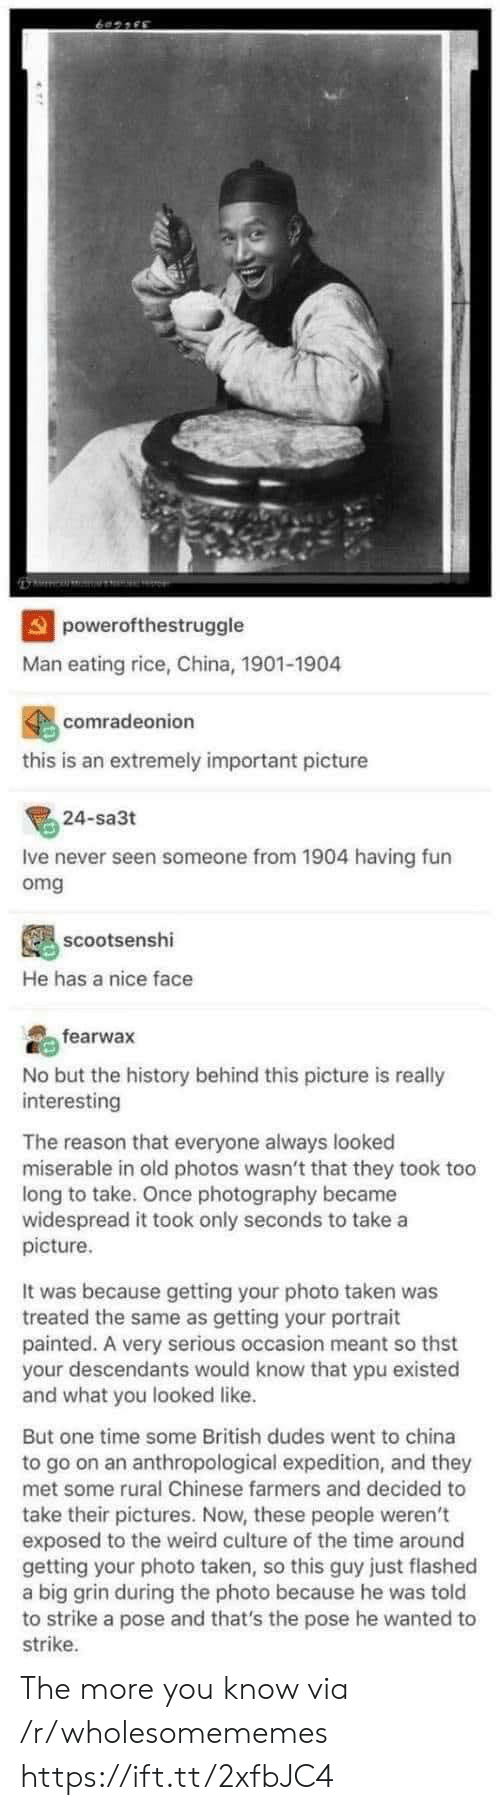 take a picture: powerofthestruggle  Man eating rice, China, 1901-1904  comradeonion  this is an extremely important picture  24-sa3t  Ive never seen someone from 1904 having fun  omg  scootsenshi  He has a nice face  fearwax  No but the history behind this picture is really  interesting  The reason that everyone always looked  miserable in old photos wasn't that they took too  long to take. Once photography became  widespread it took only seconds to take a  picture  It was because getting your photo taken was  treated the same as getting your portrait  painted. A very serious occasion meant so thst  your descendants would know that ypu existed  and what you looked like.  But one time some British dudes went to china  to go on an anthropological expedition, and they  met some rural Chinese farmers and decided to  take their pictures. Now, these people weren't  exposed to the weird culture of the time around  getting your photo taken, so this guy just flashed  a big grin during the photo because he was told  to strike a pose and that's the pose he wanted to  strike The more you know via /r/wholesomememes https://ift.tt/2xfbJC4